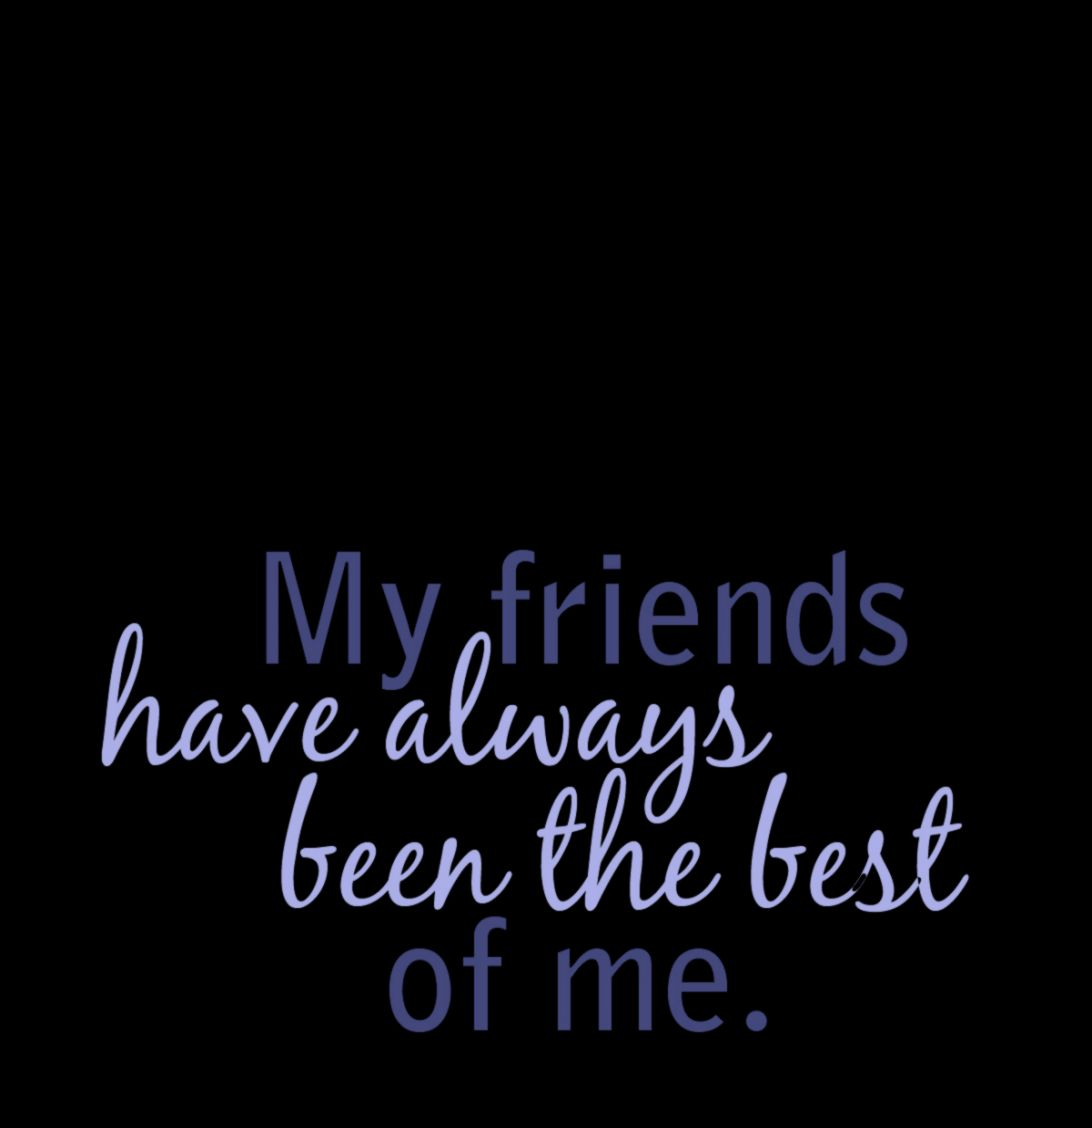 Best Friend Quotes Wallpapers Top Free Best Friend Quotes Backgrounds Wallpaperaccess